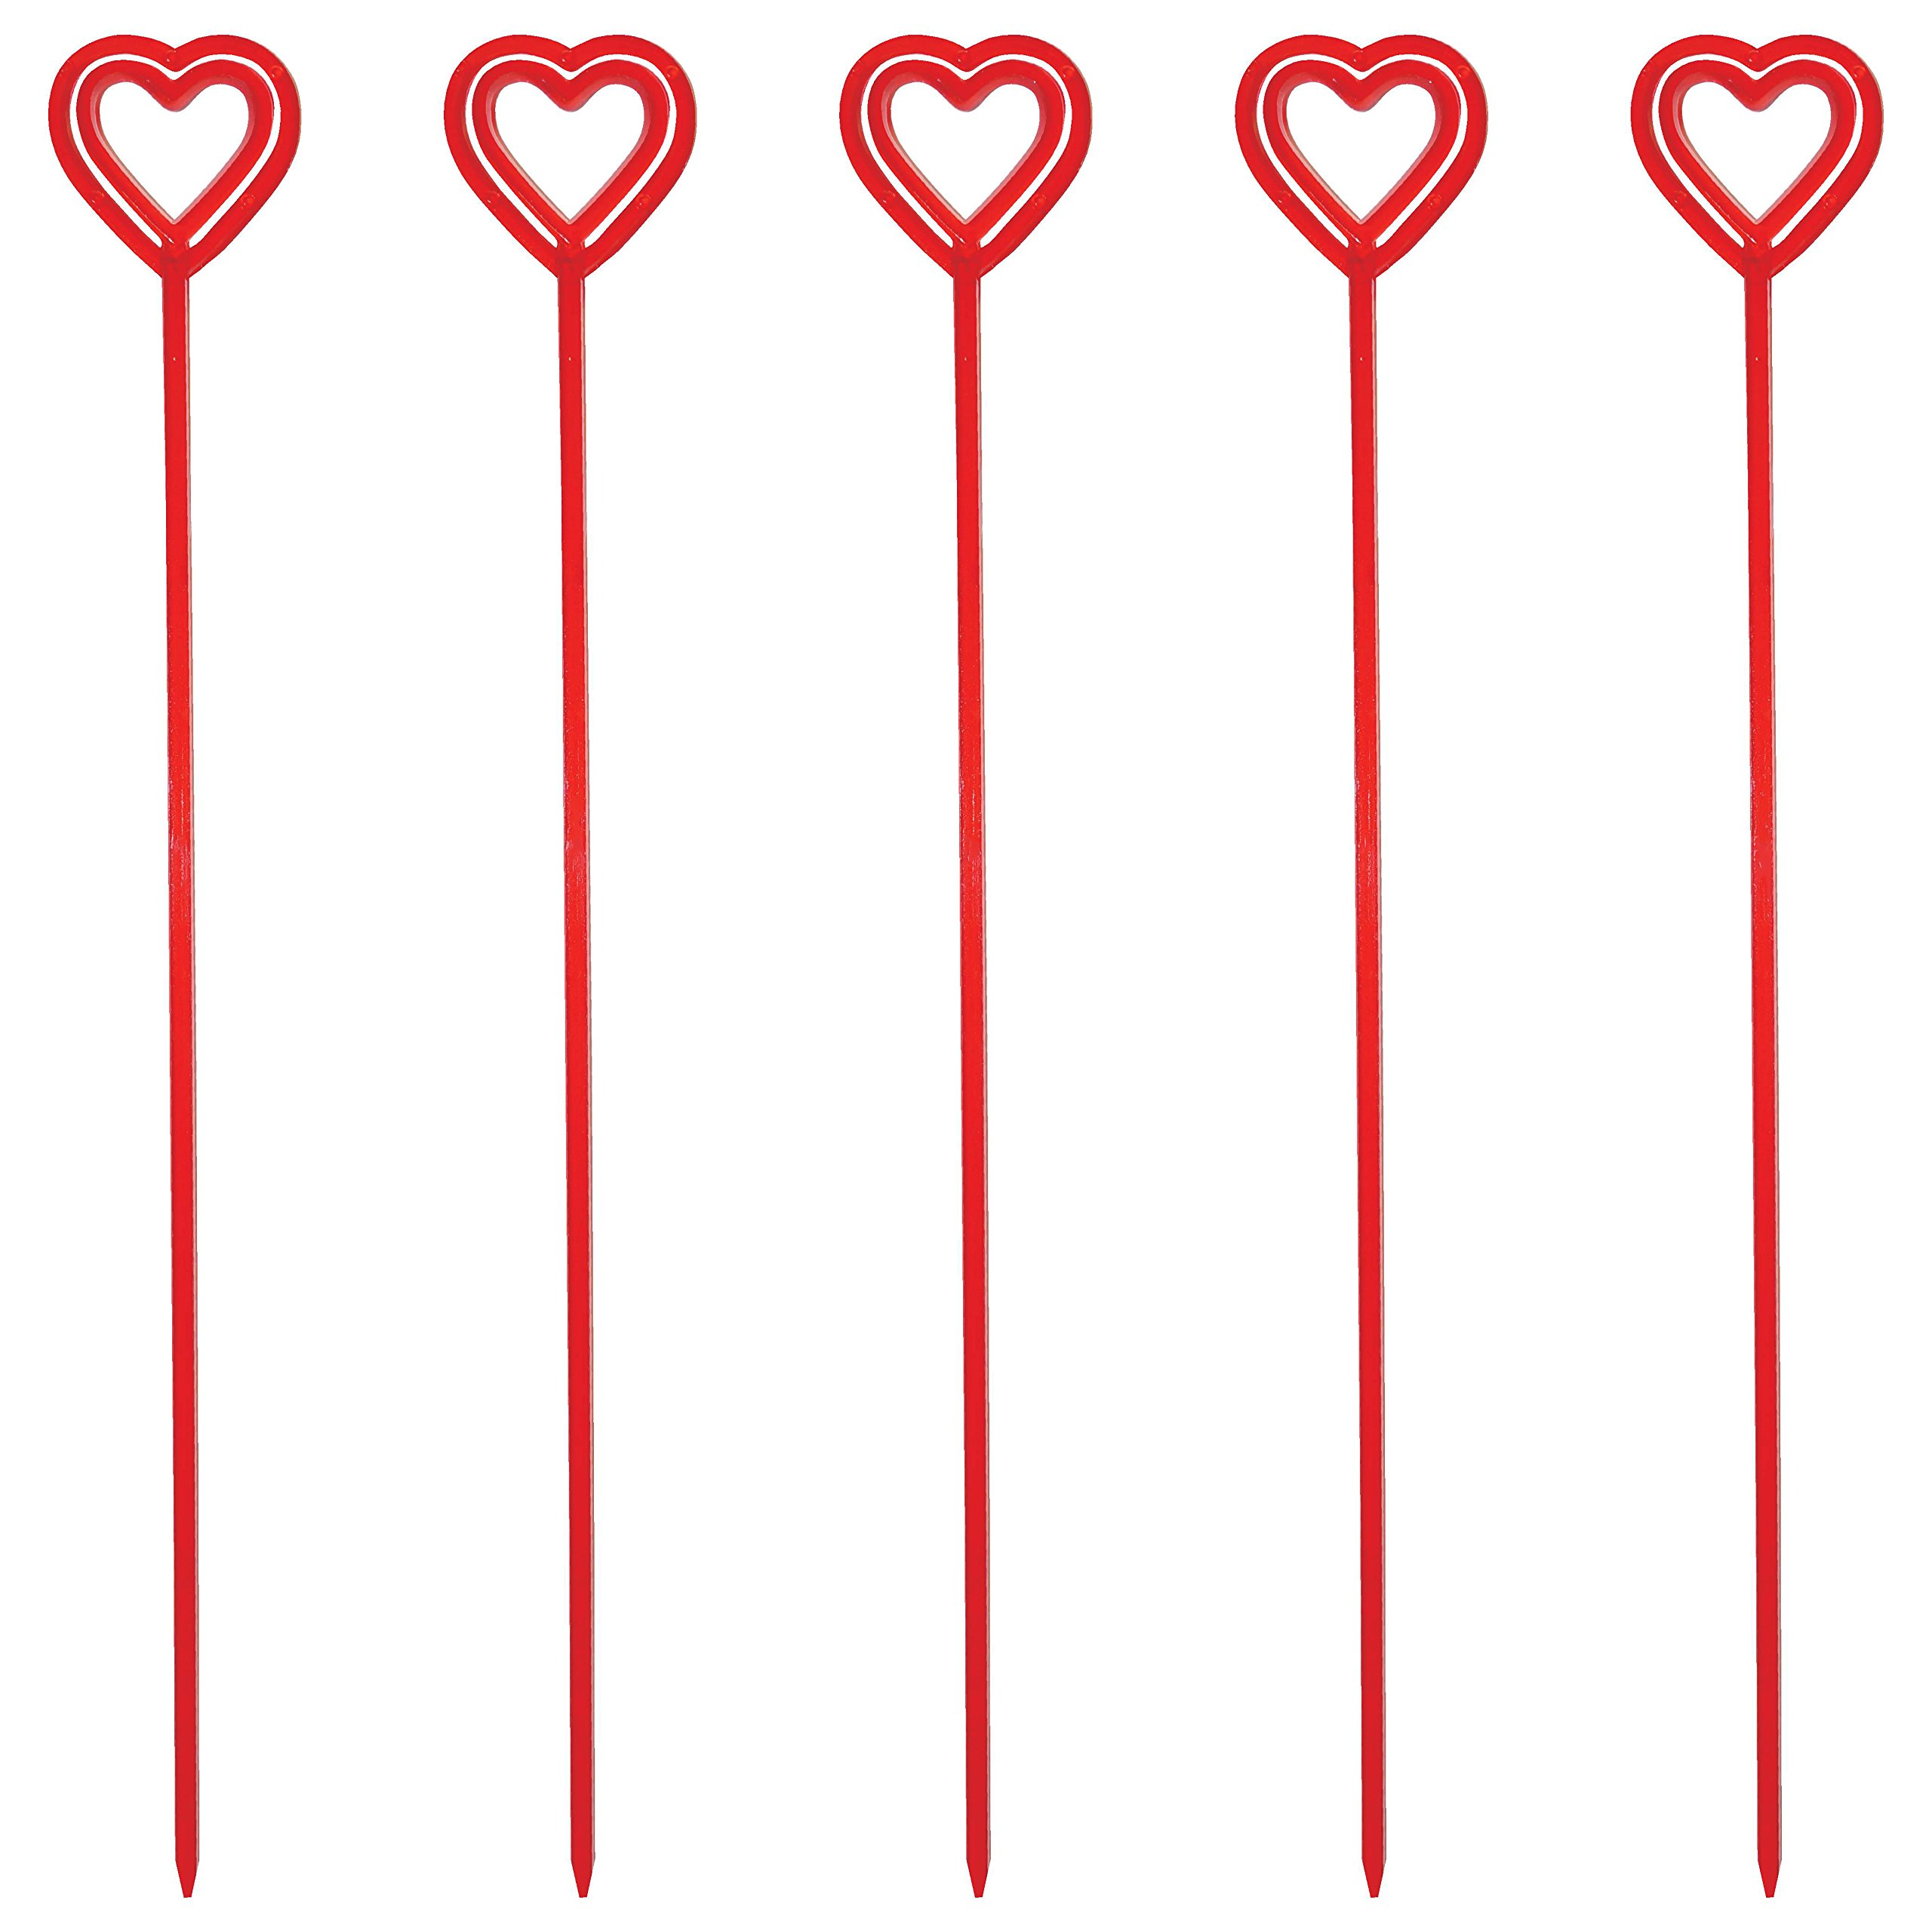 Royer 12 Inch Plastic Heart Valentine's Day Floral Picks, Card Holders, Set of 100 (Transparent Red) - Made In USA